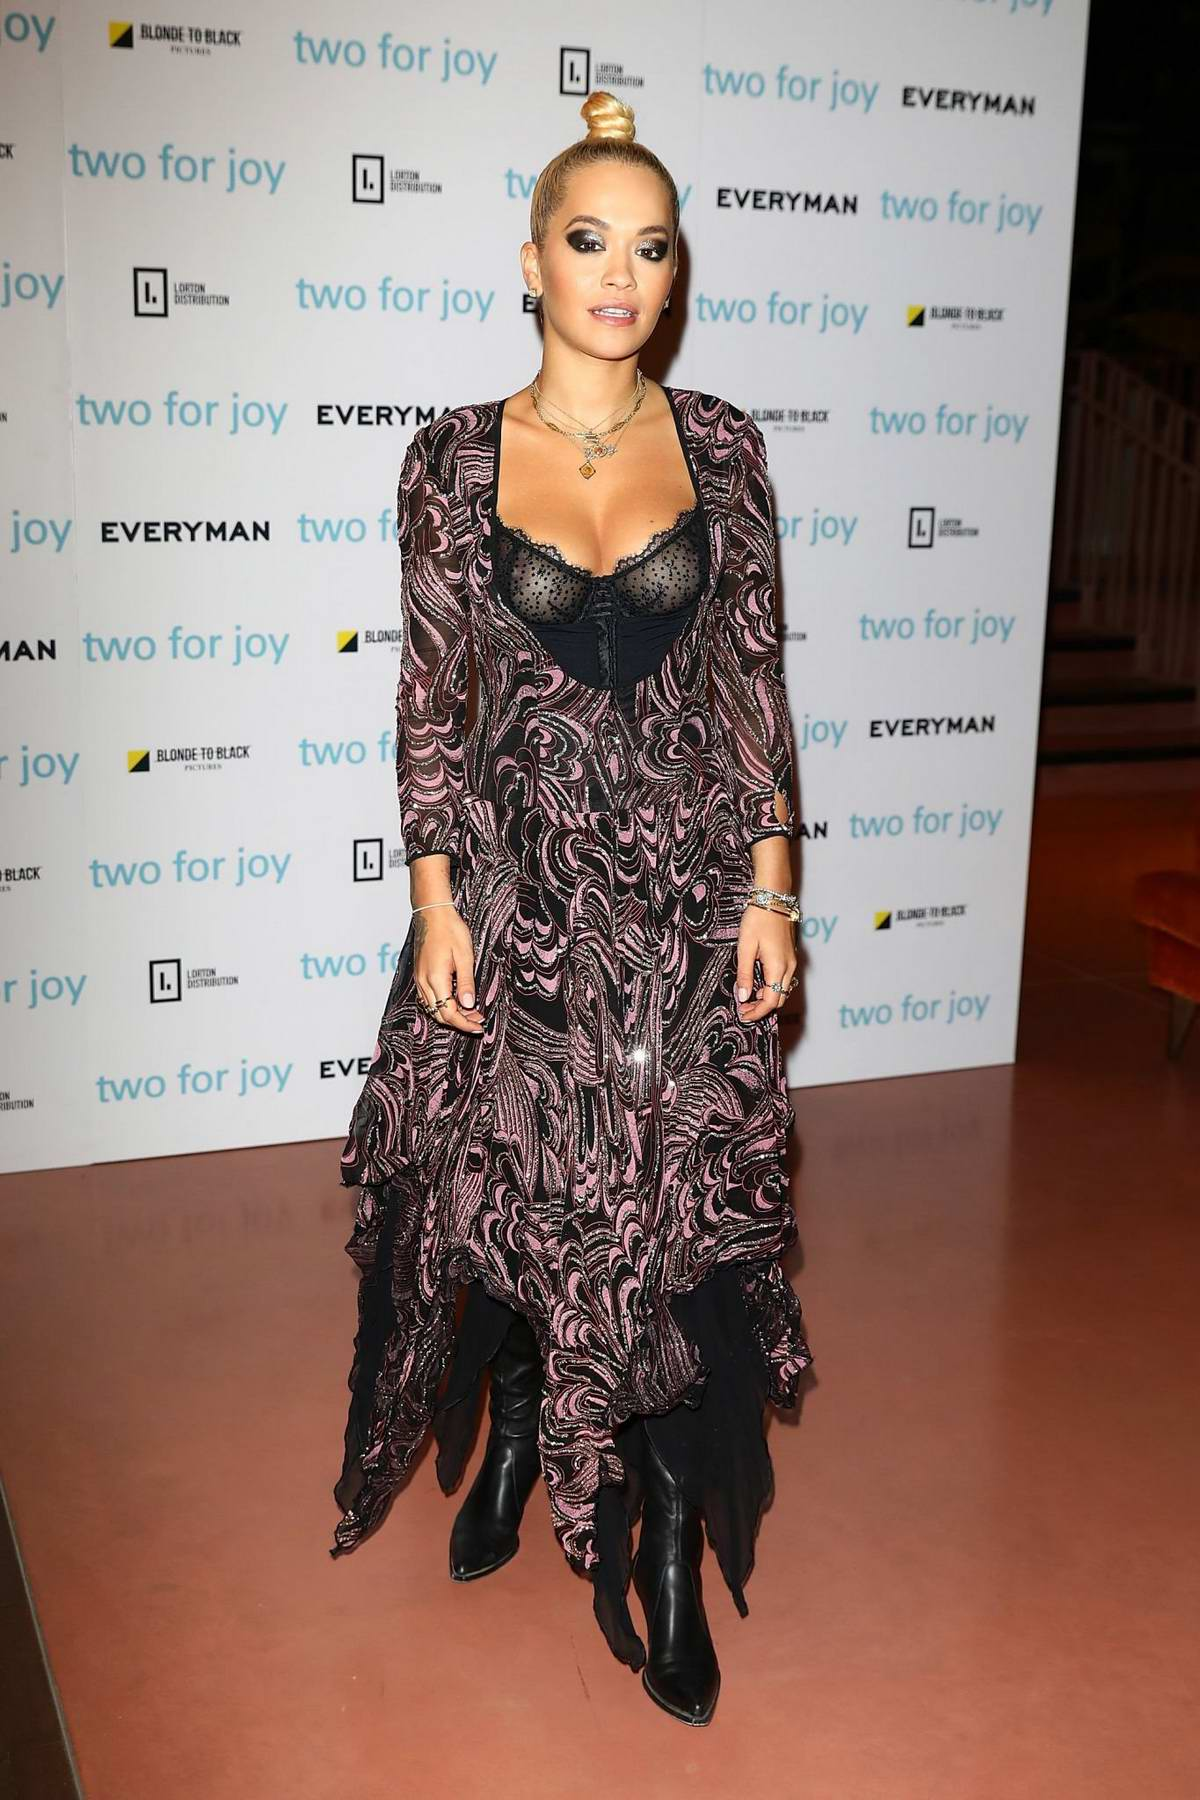 Rita Ora attends the UK Premiere of 'Two For Joy' in London, UK